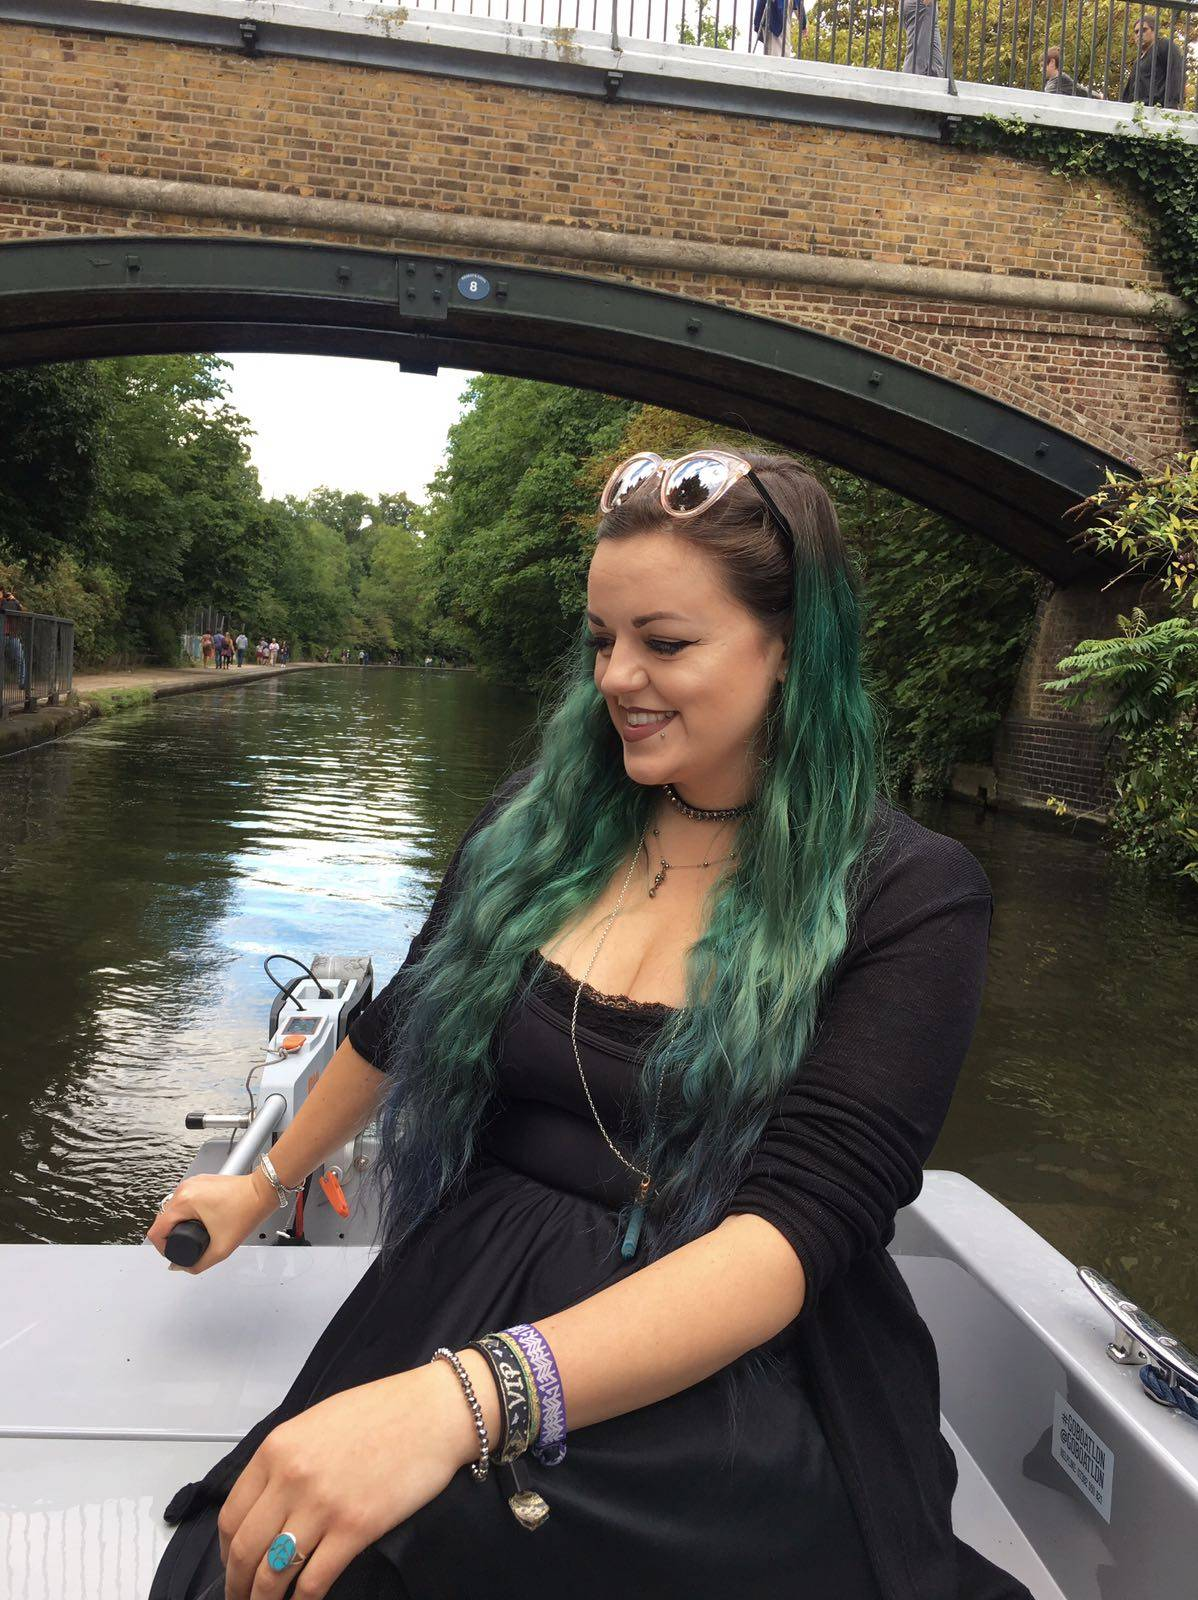 GoBoat London Canals Boating Day Out